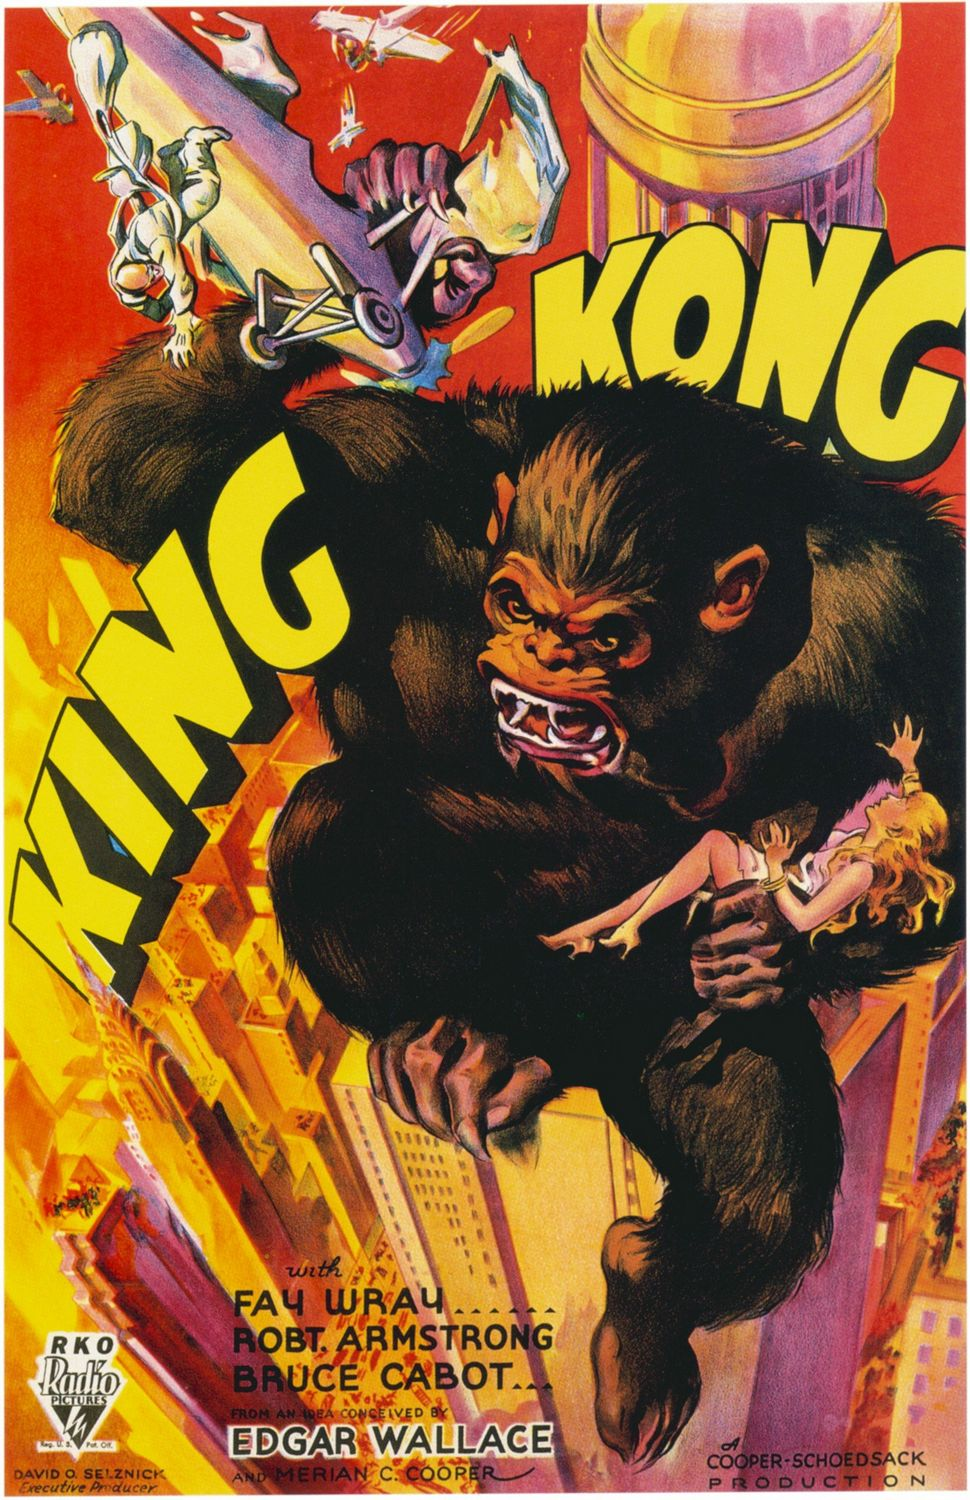 King Kong (1933) - First original sotry - Cast: Fay Wray, Robert Armstrong, Bruce Cabot, Noble Johnson - Classic Cult Film Poster